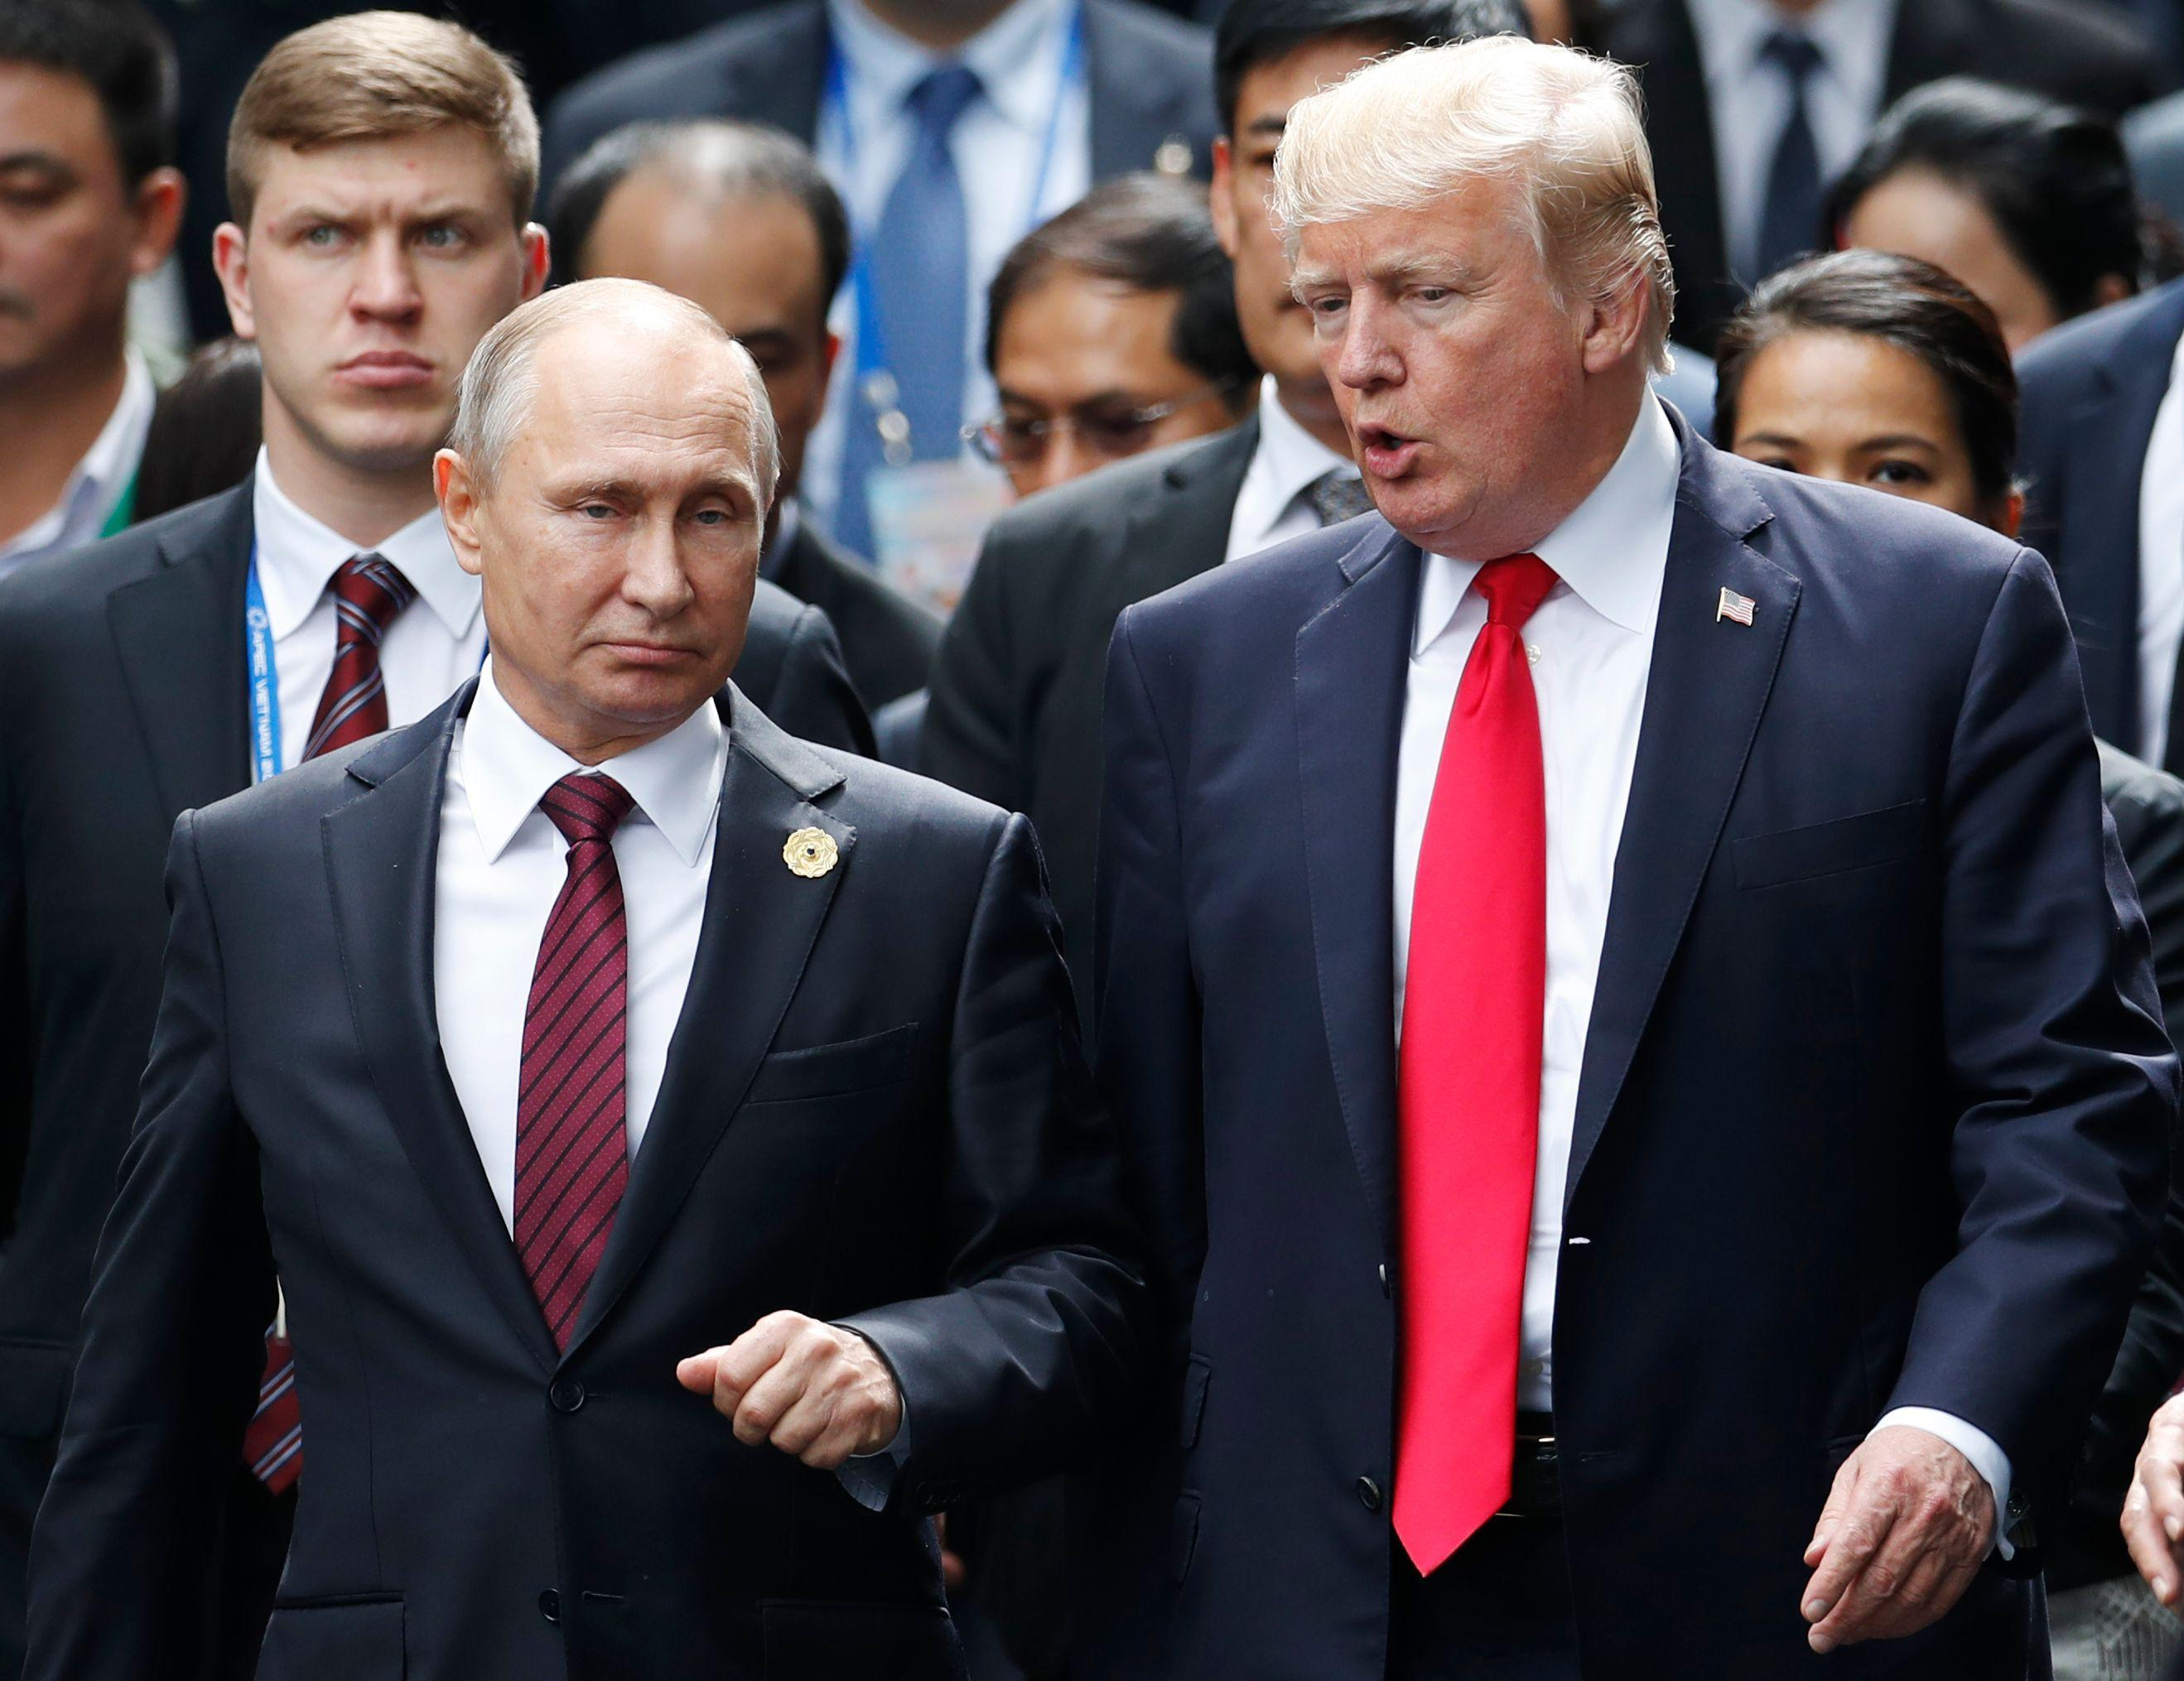 Putin and Trump have been told by the UFC president they can be his VIP ringside guests